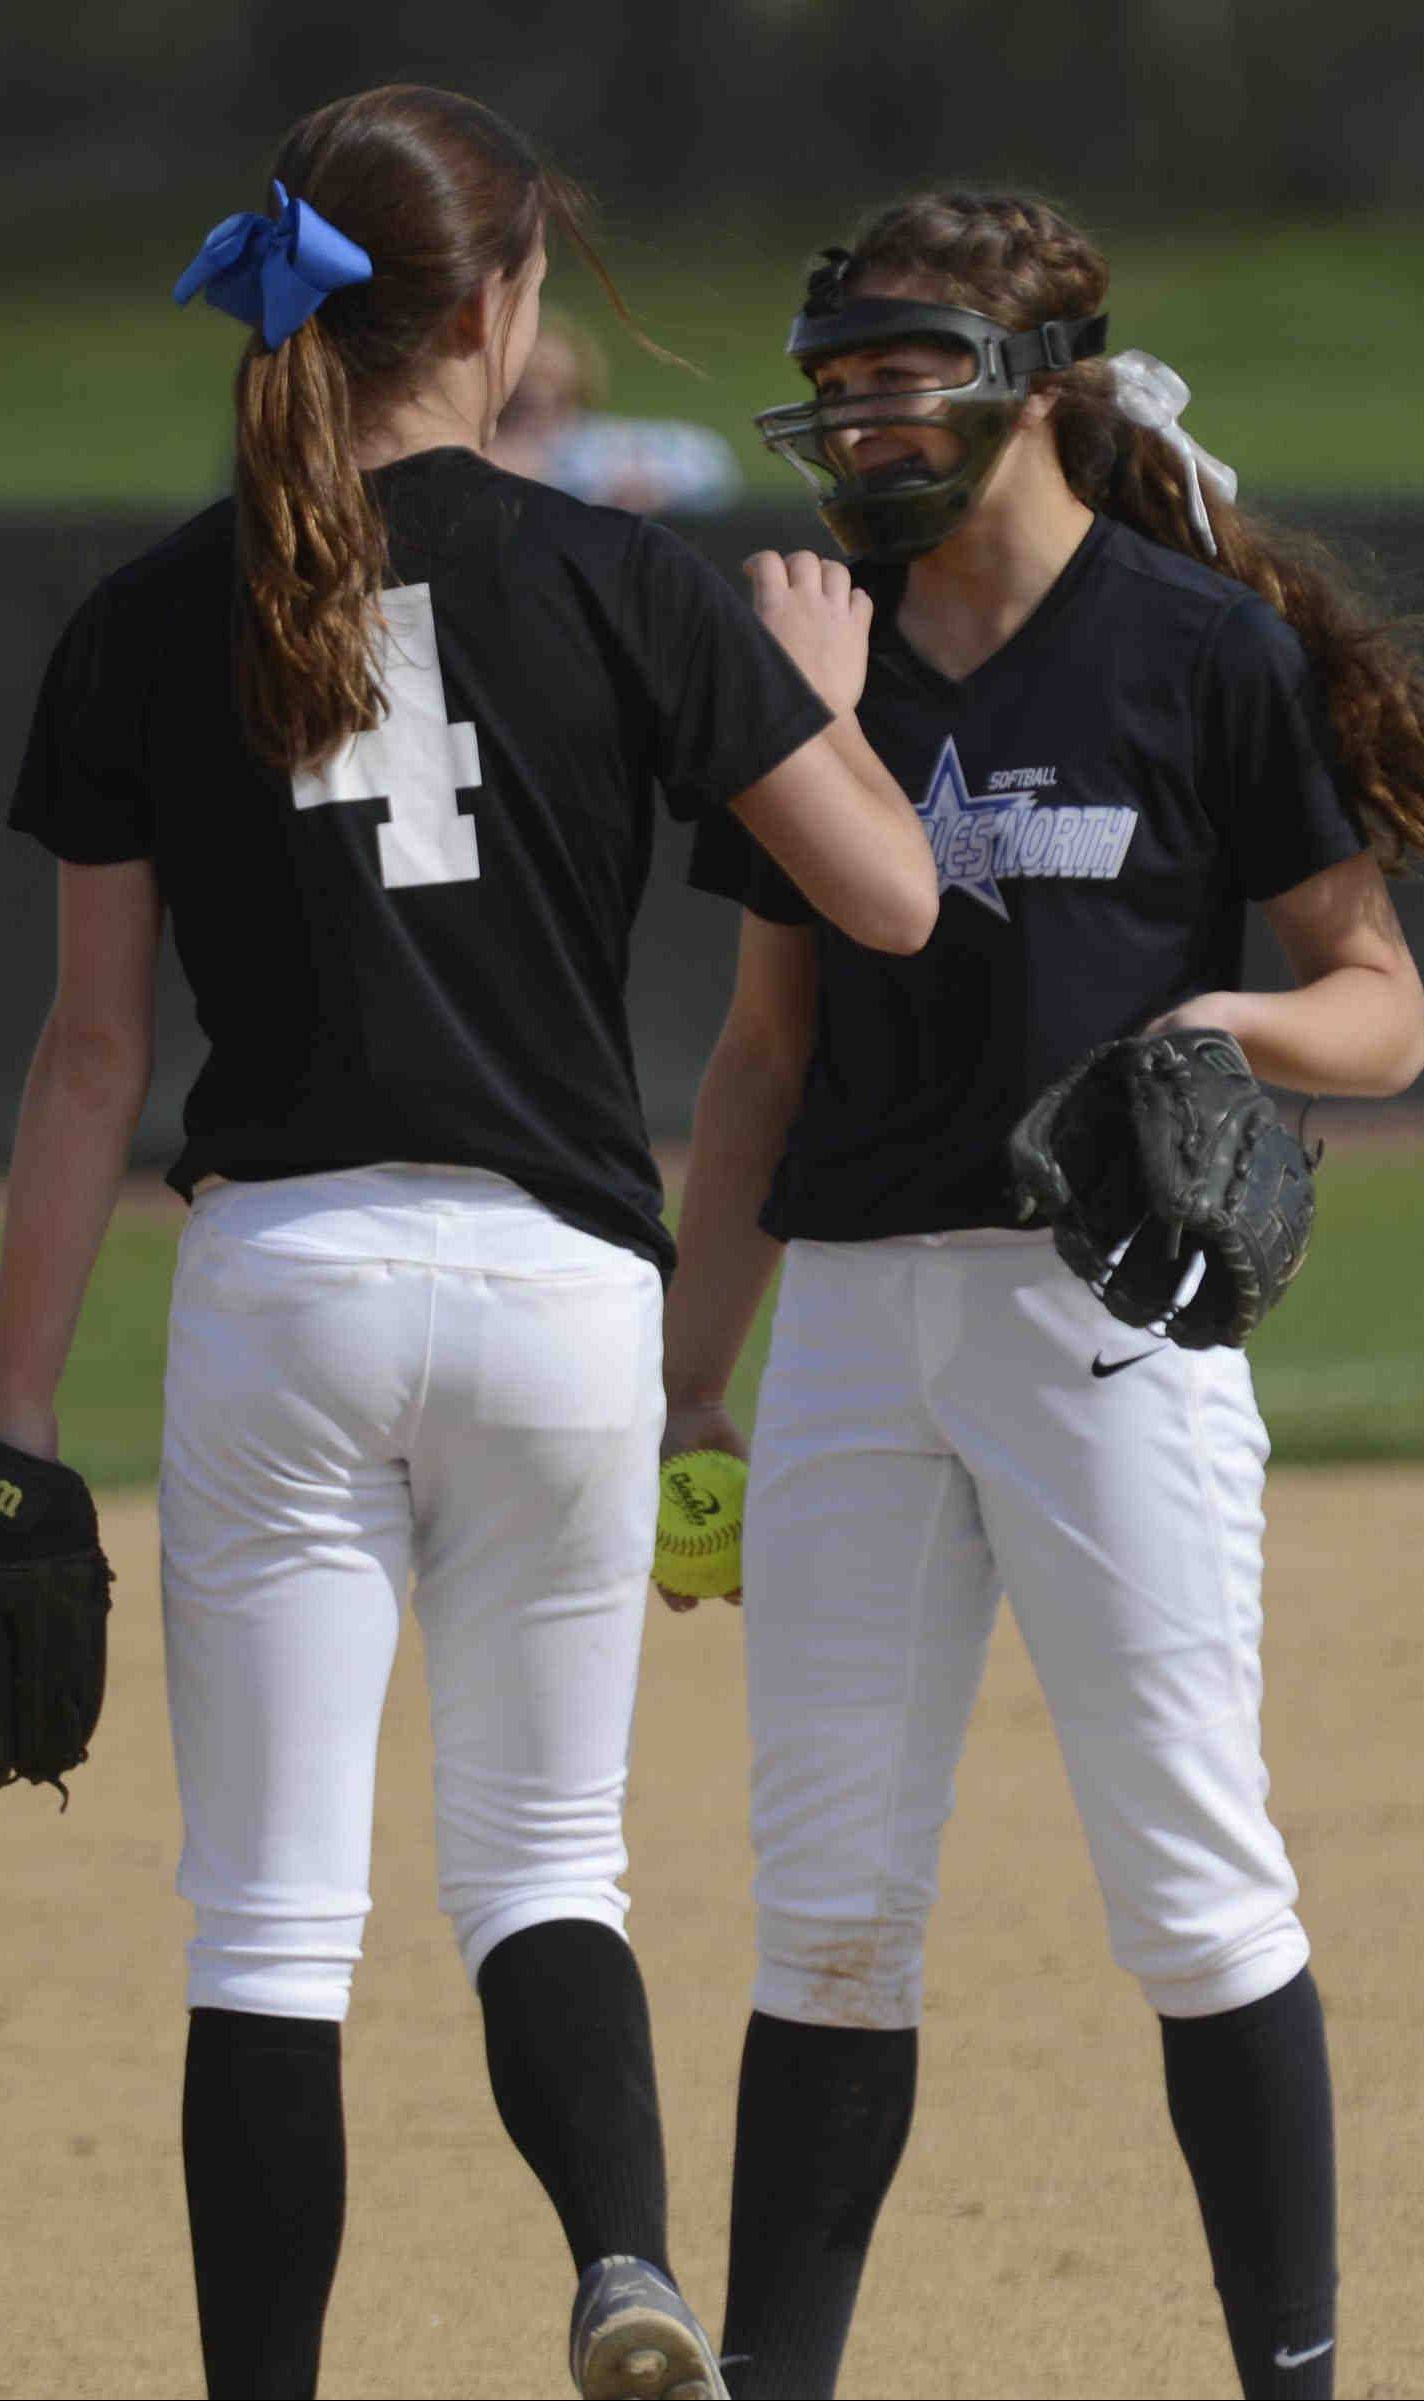 St. Charles North's Kaitlyn Waslawski, who hit a home run and drove in the game-clinching run, and pitcher Sabrina Rabin were two keys in the North Stars' win Monday.